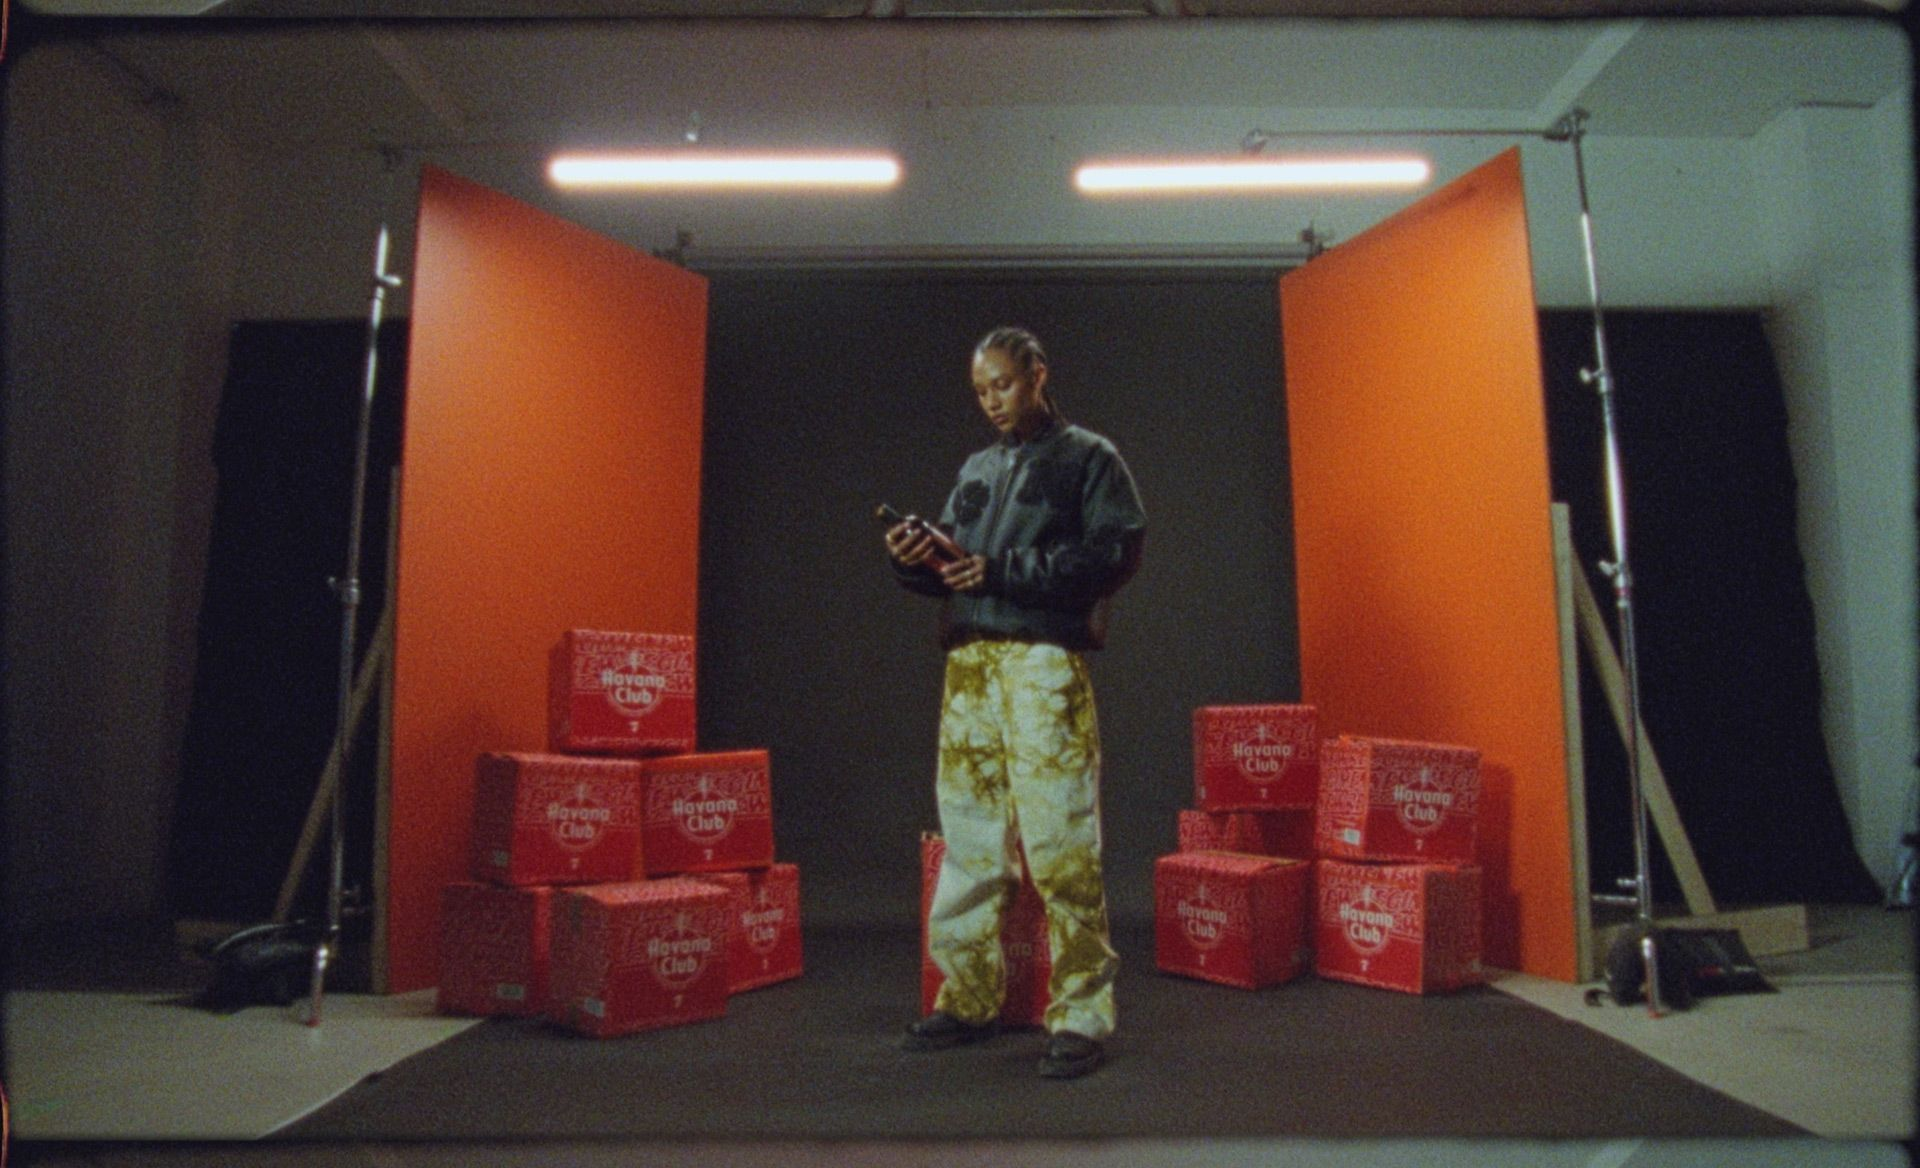 Model in studio wearing a black jacket and baggy pants looking at a bottle of Havana Club with cases of the product on the sides.